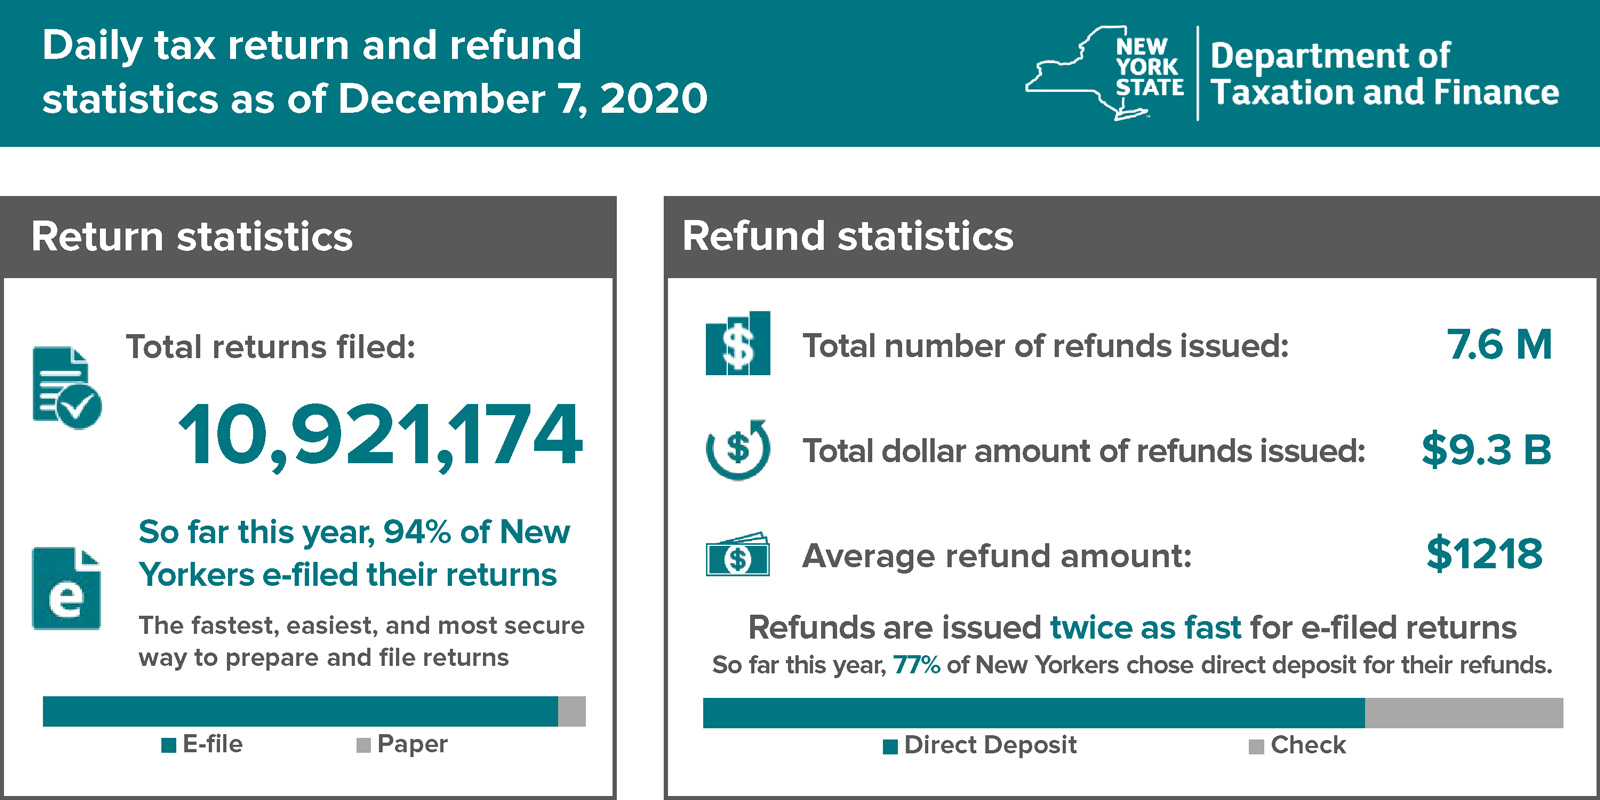 Personal income tax return and refund statistics